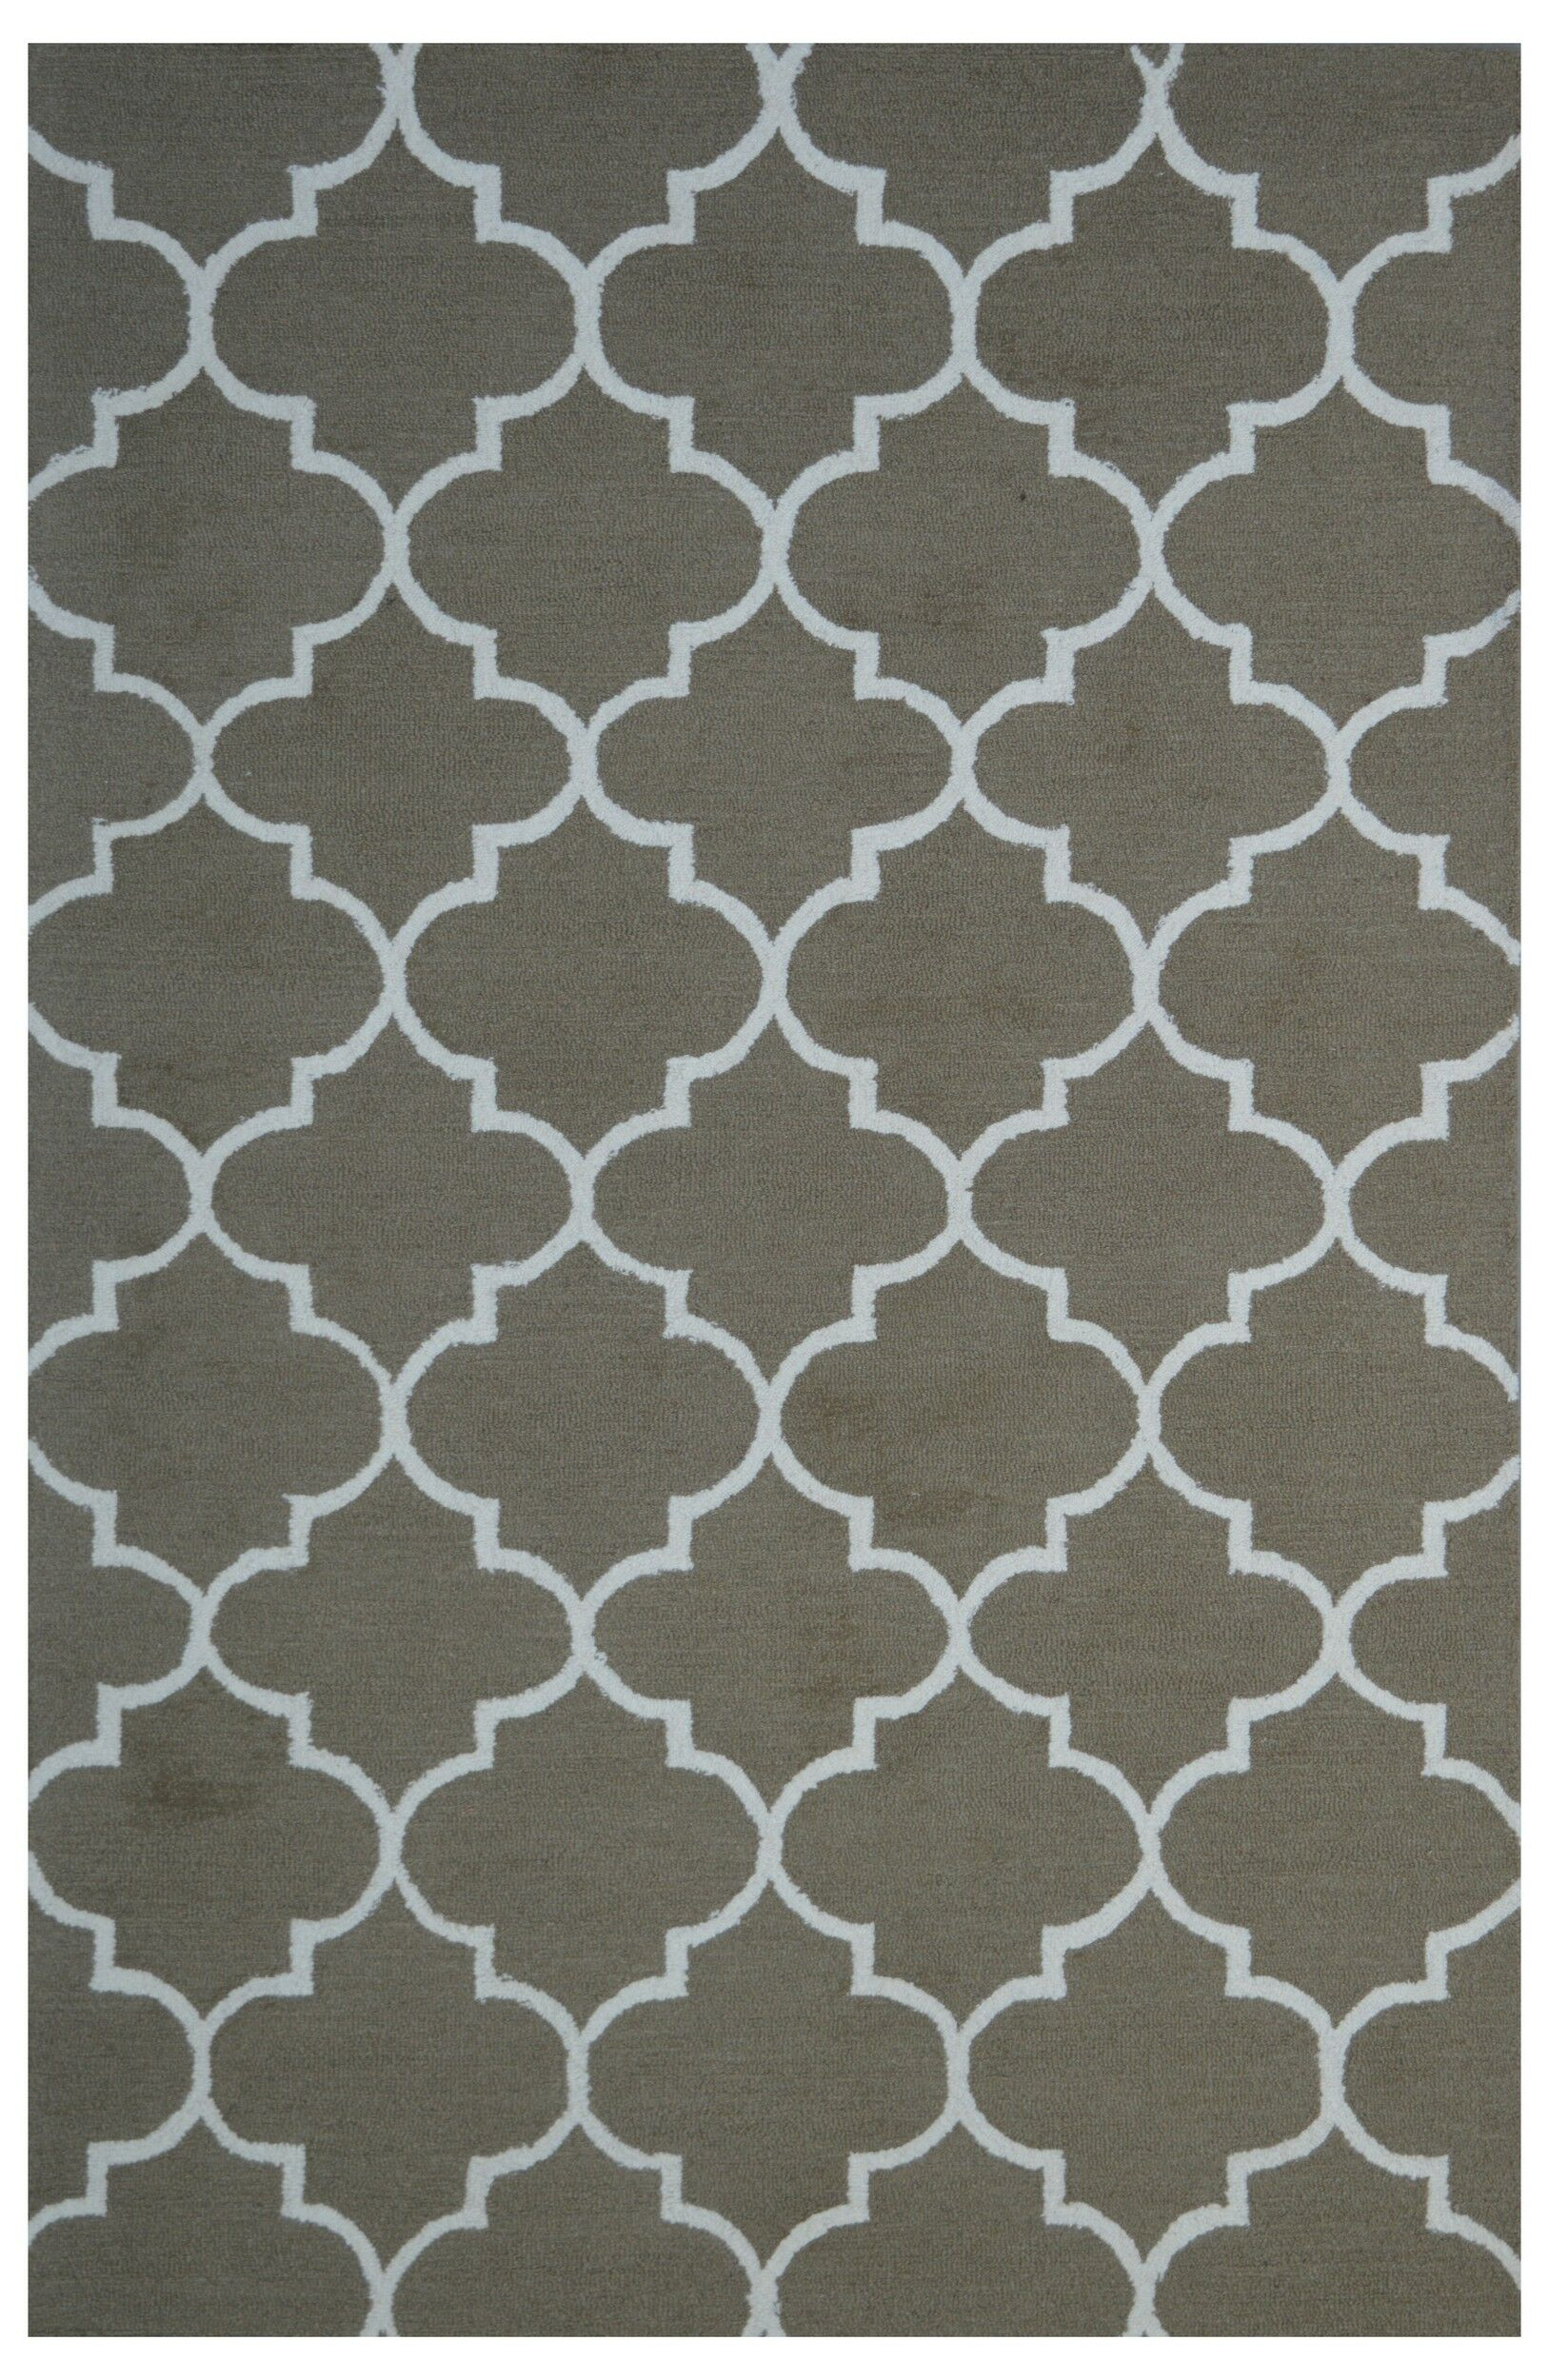 Wool Hand-Tufted Gray Area Rug Rug Size: 5' x 8'